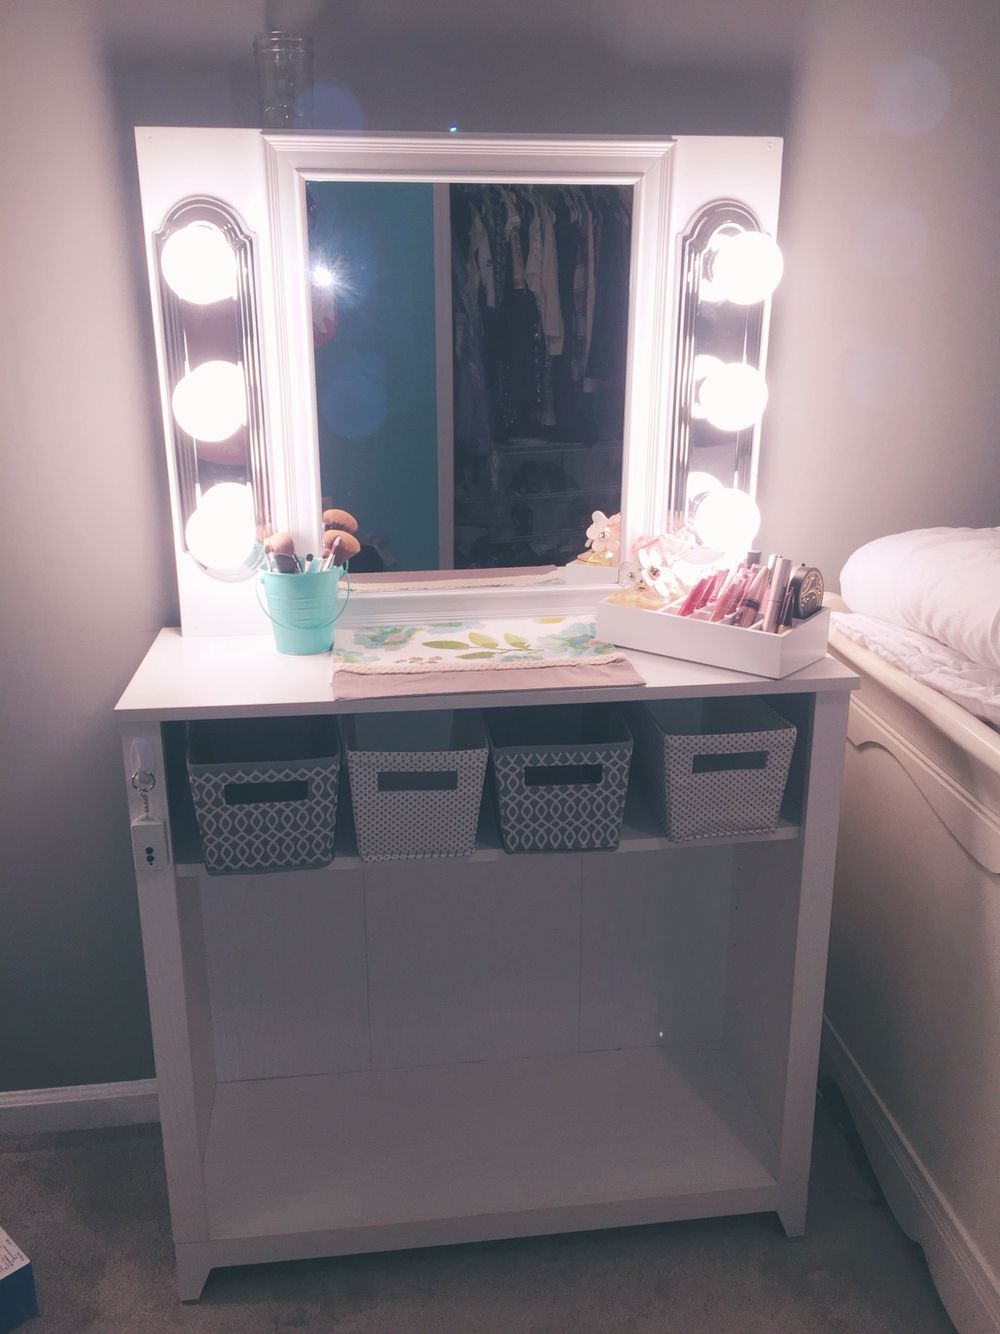 Diy Vanity Mirror 24x48 Plywood And 4 In Panel Wood To